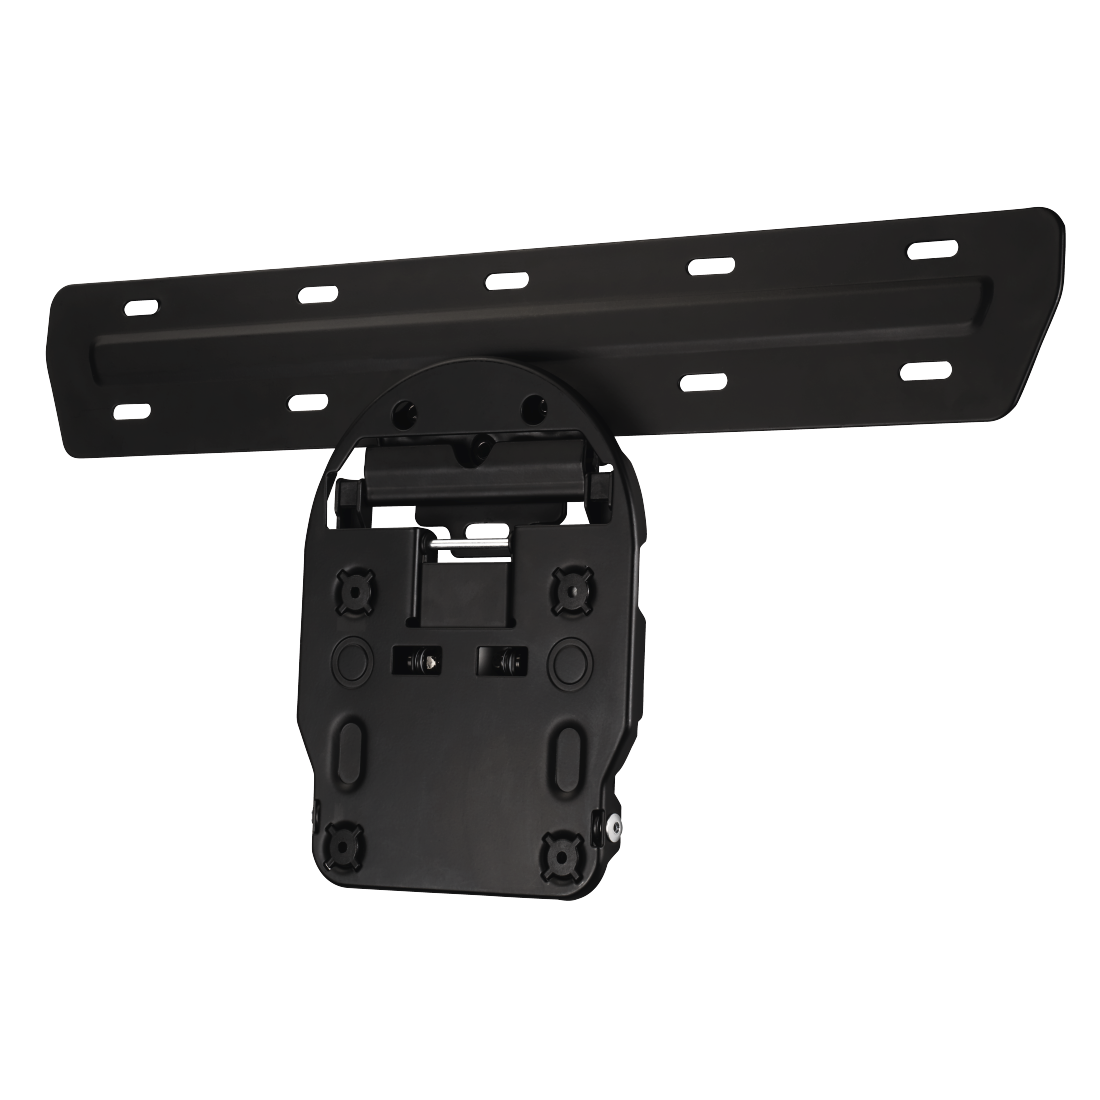 Hama (2019) QLED No Gap Wall Mount (49 - 65 Inch) With Tilt